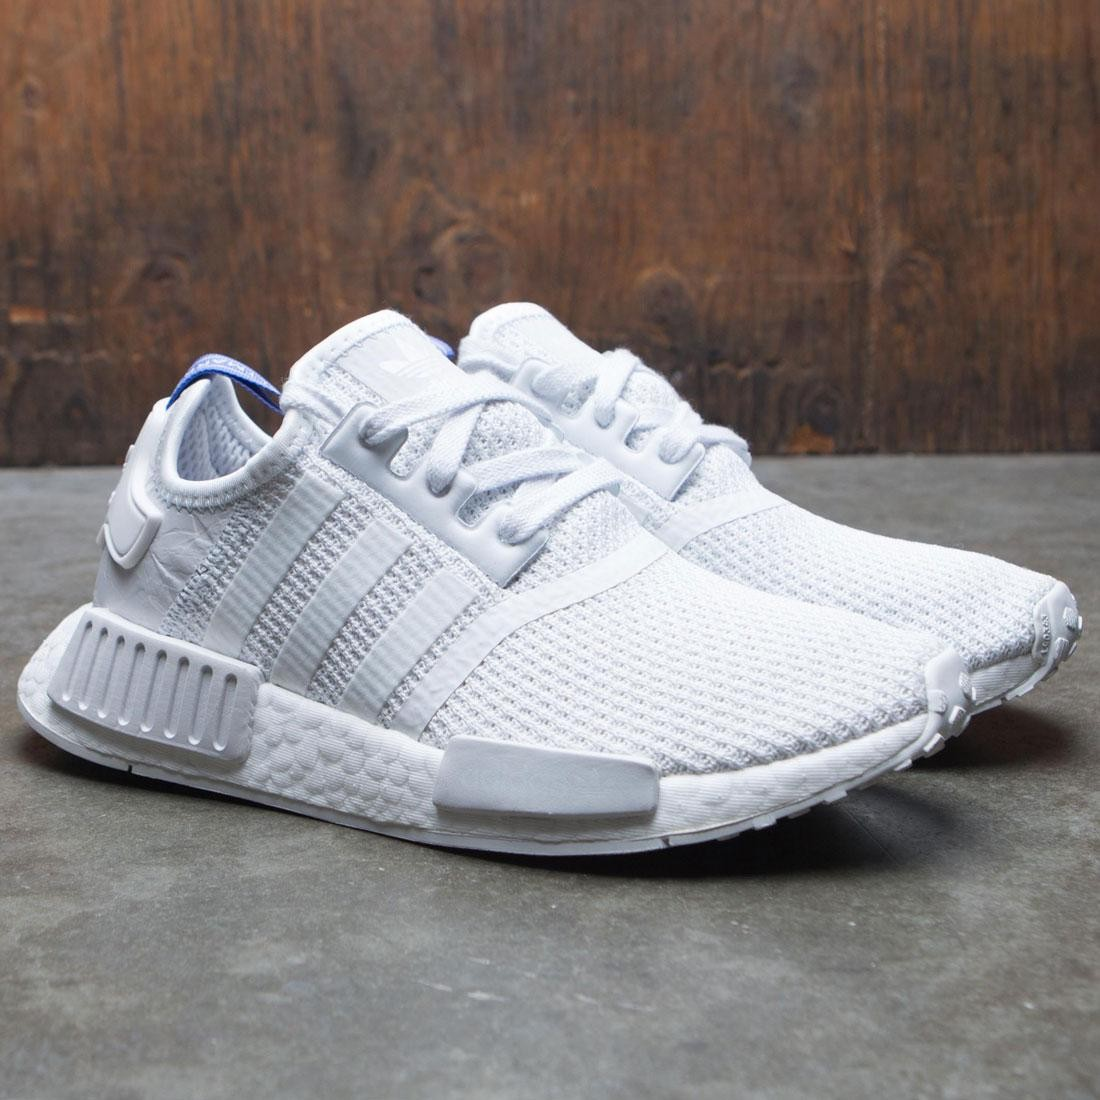 Front View Adidas Womens Nmd R1 W in White White Lilac in